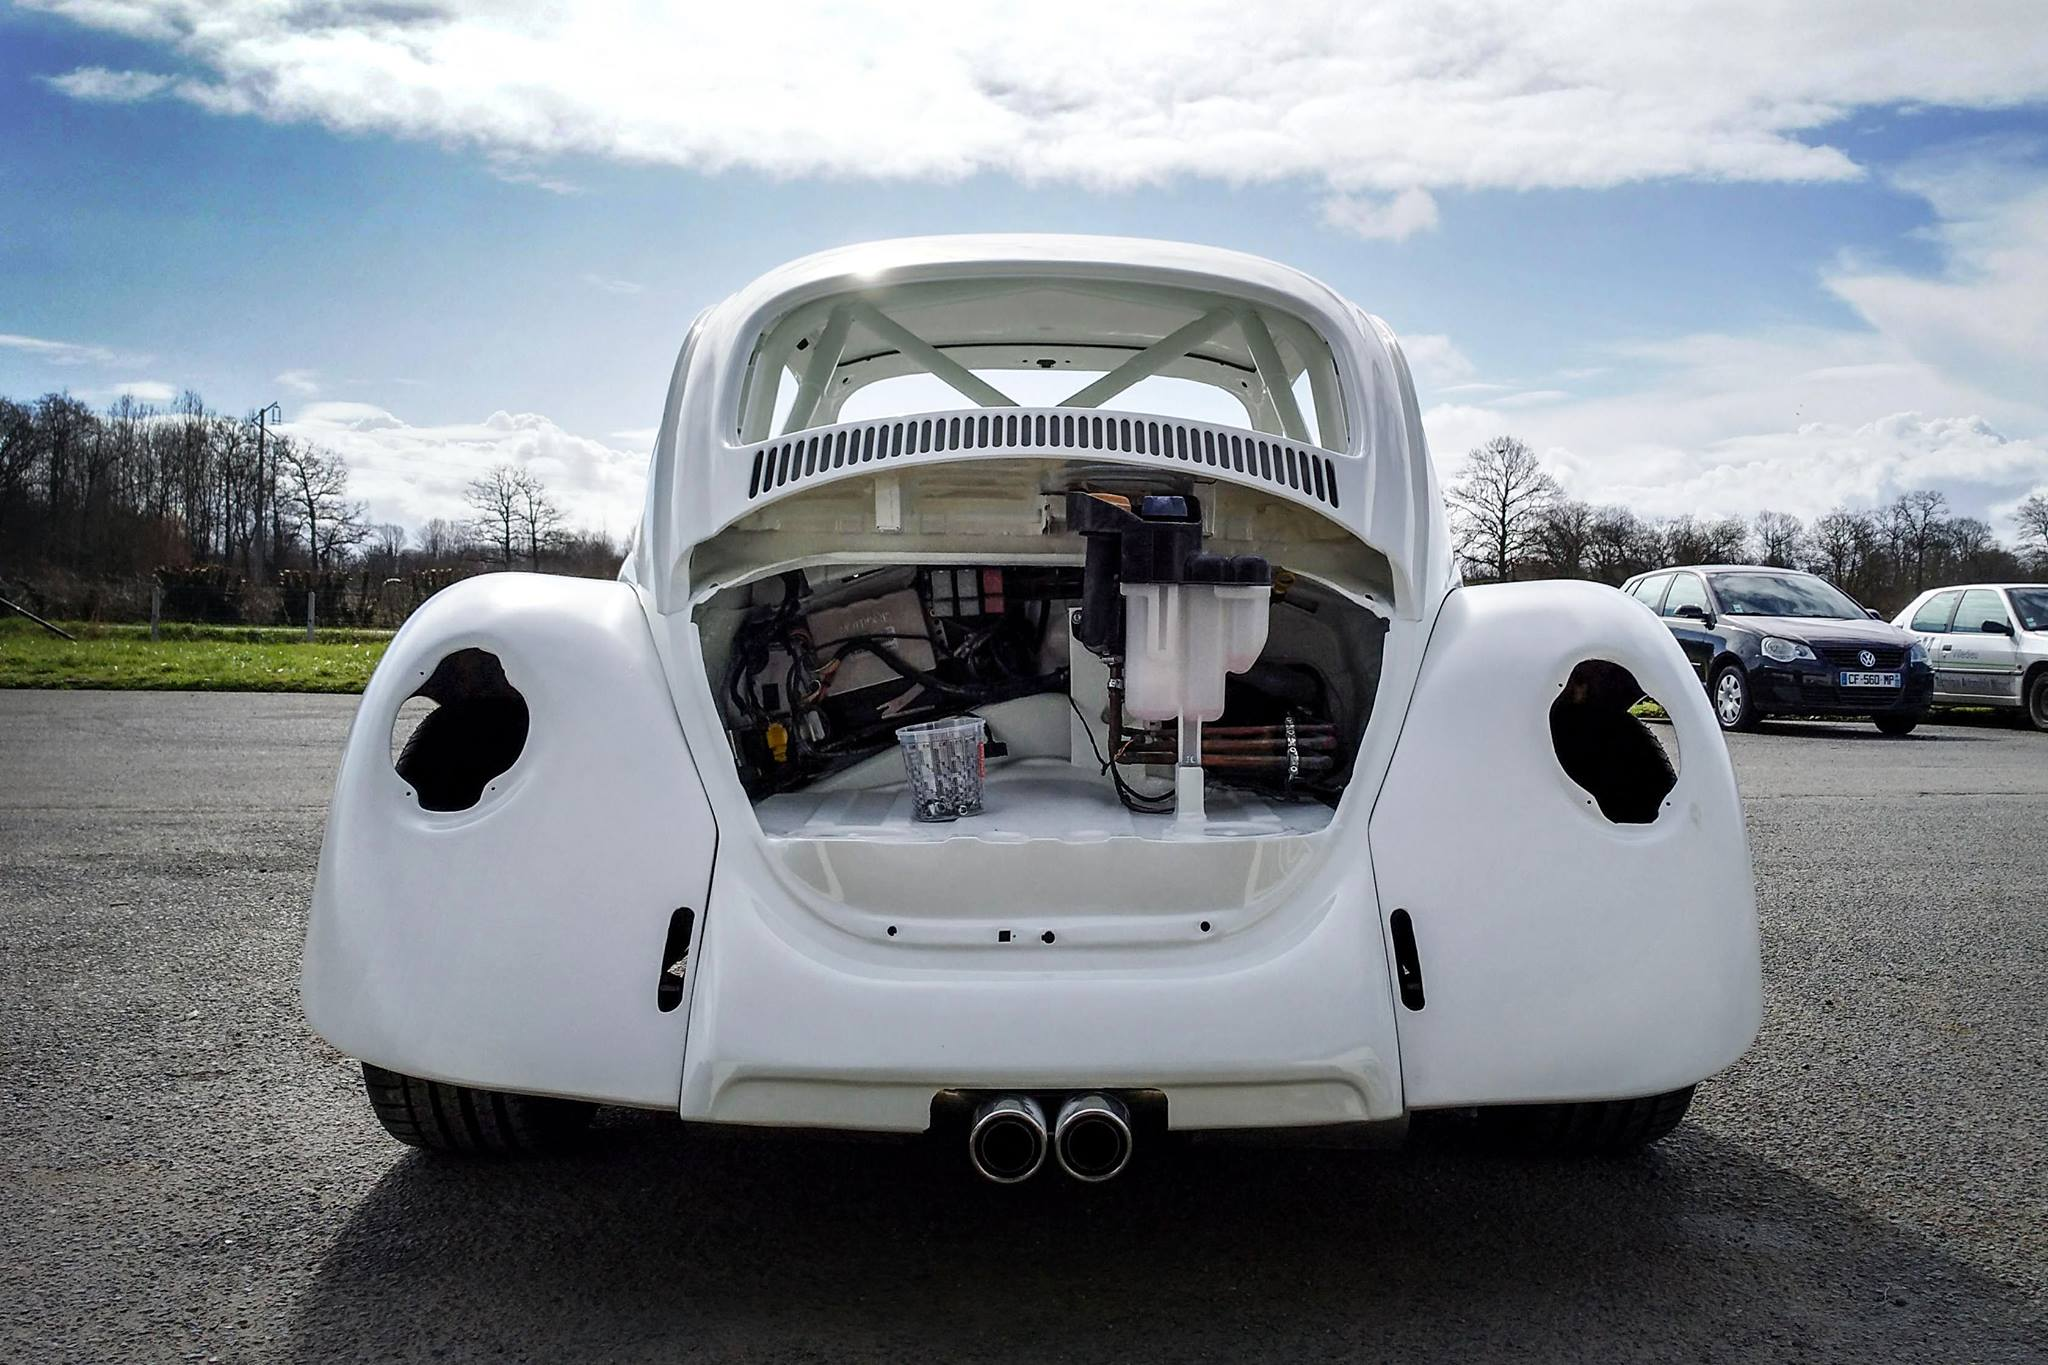 Vw Beetle Body On A Porsche Boxster Chassis Engine Swap Depot